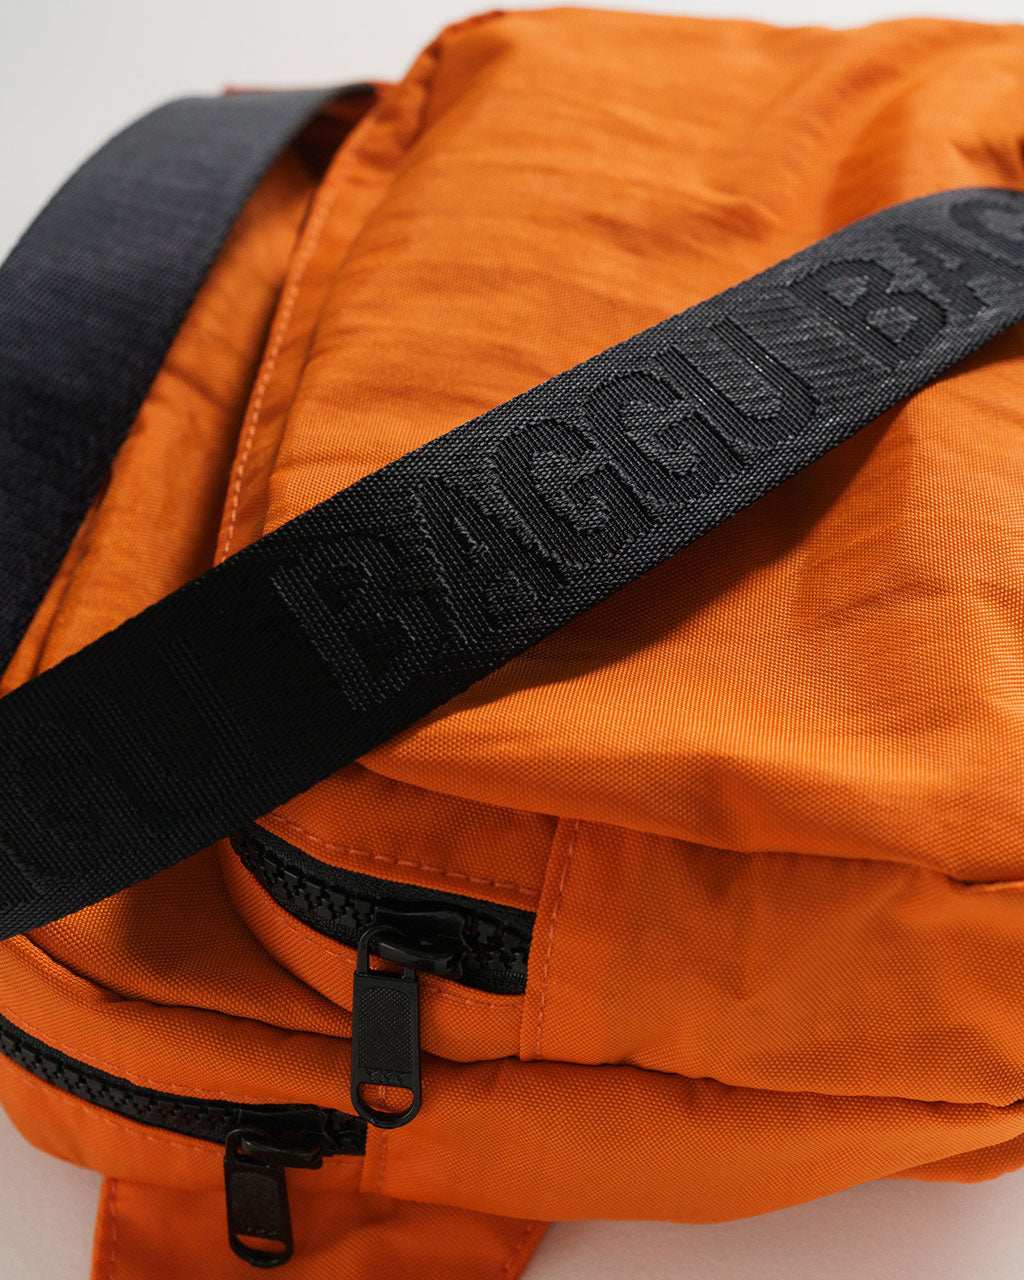 detailed image of orange fanny pack